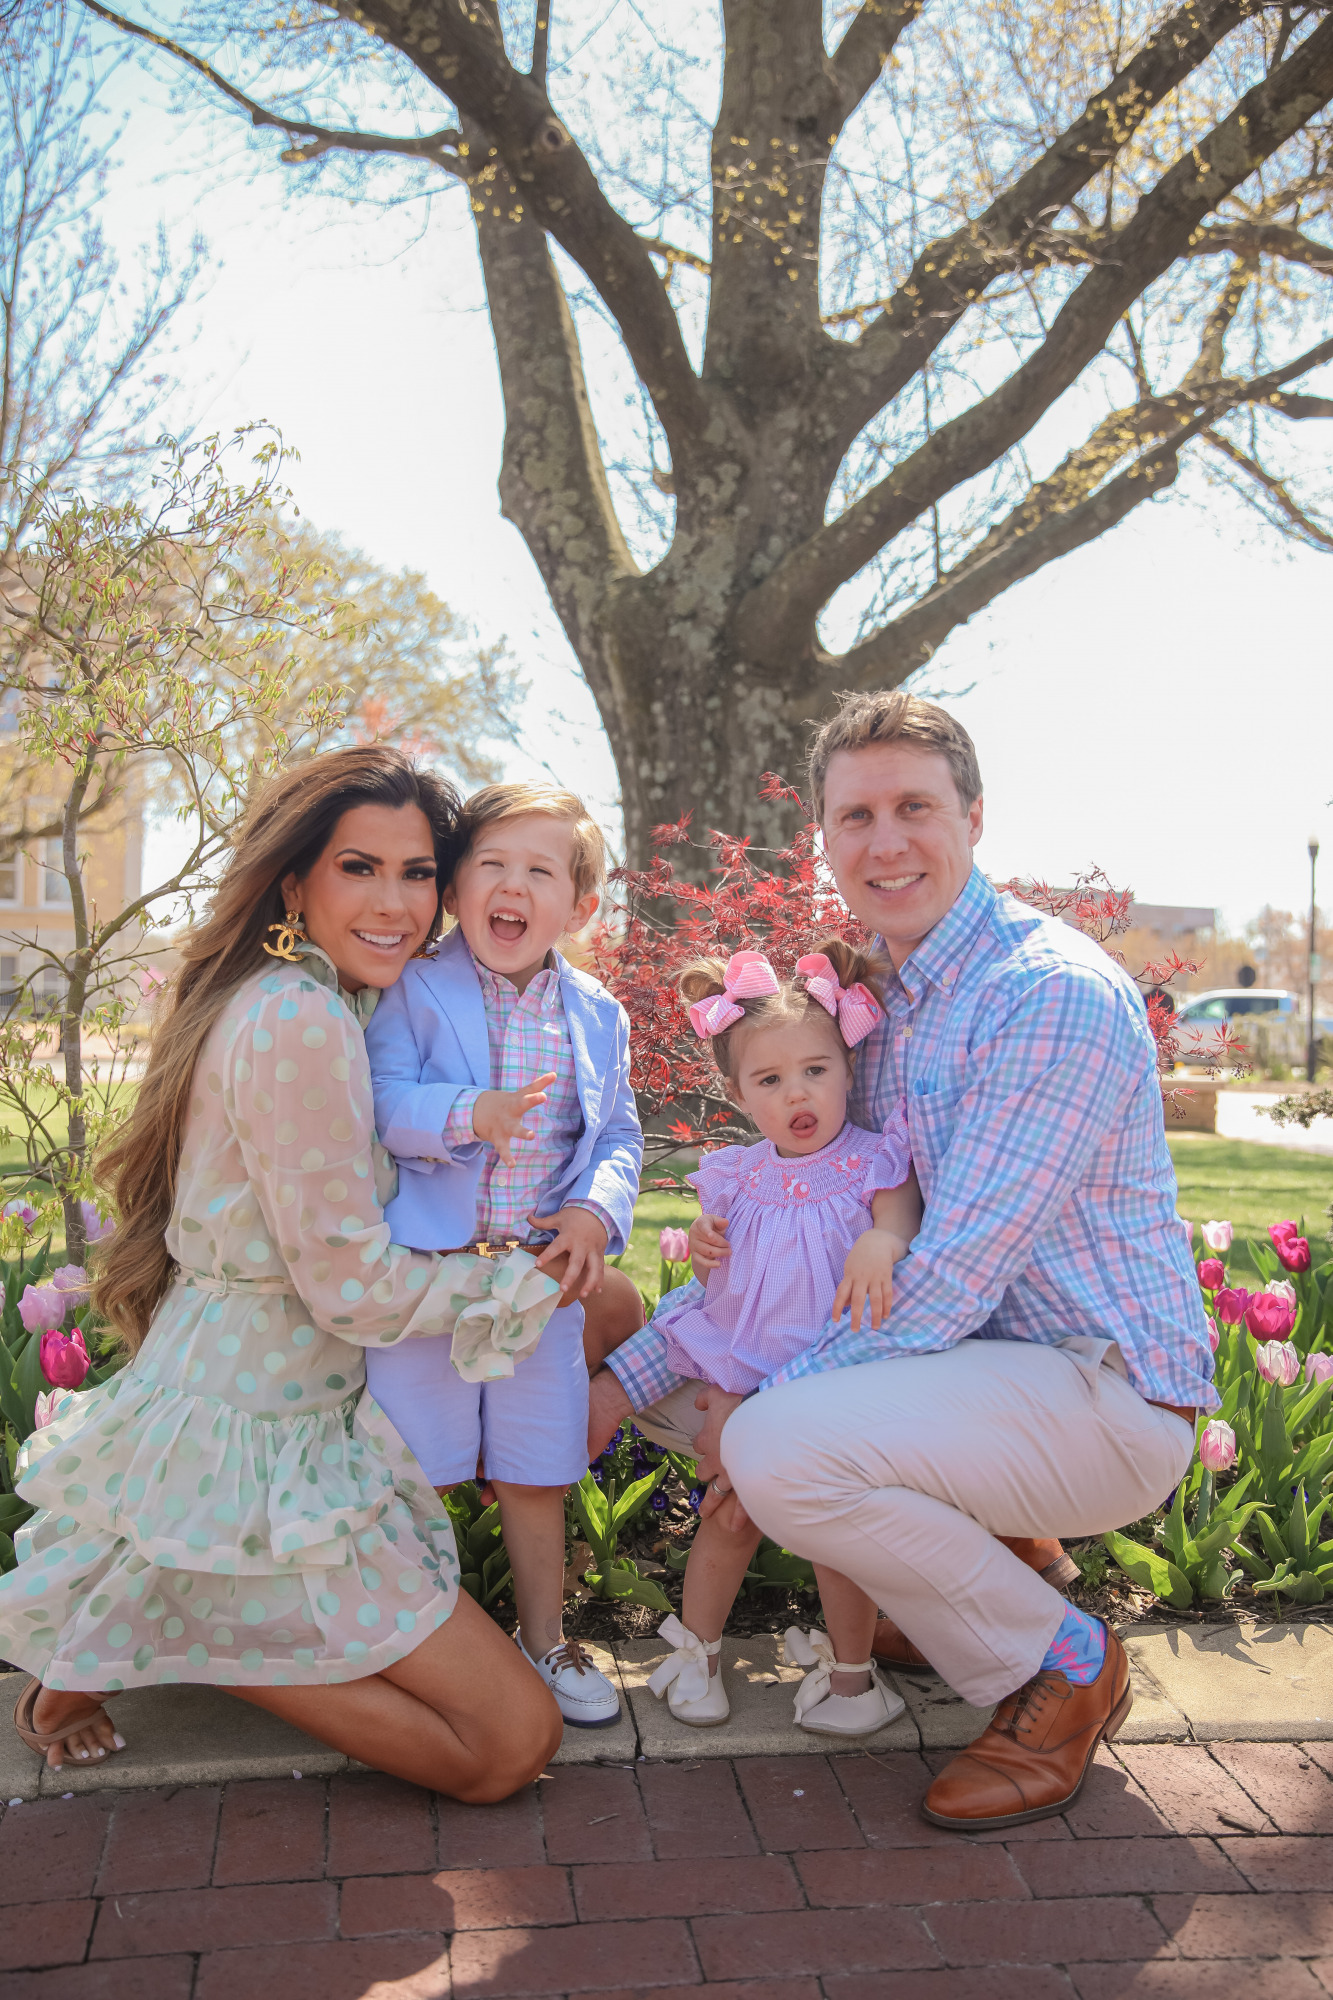 Zimmermann dress, family easter outfit photos, toddler fashion outfit spring summer 2021, Emily Gemma   April Instagram Recap by popular US fashion blog, The Sweetest Thing: image of Emily Gemma, her two kids and her husband kneeling together outside and wearing a cream and blue polka dot print dress, pink and blue plaid button up shirt, tan slacks, pink dress, pink hair bows, blue blazer, blue shorts, and white boater shoes.